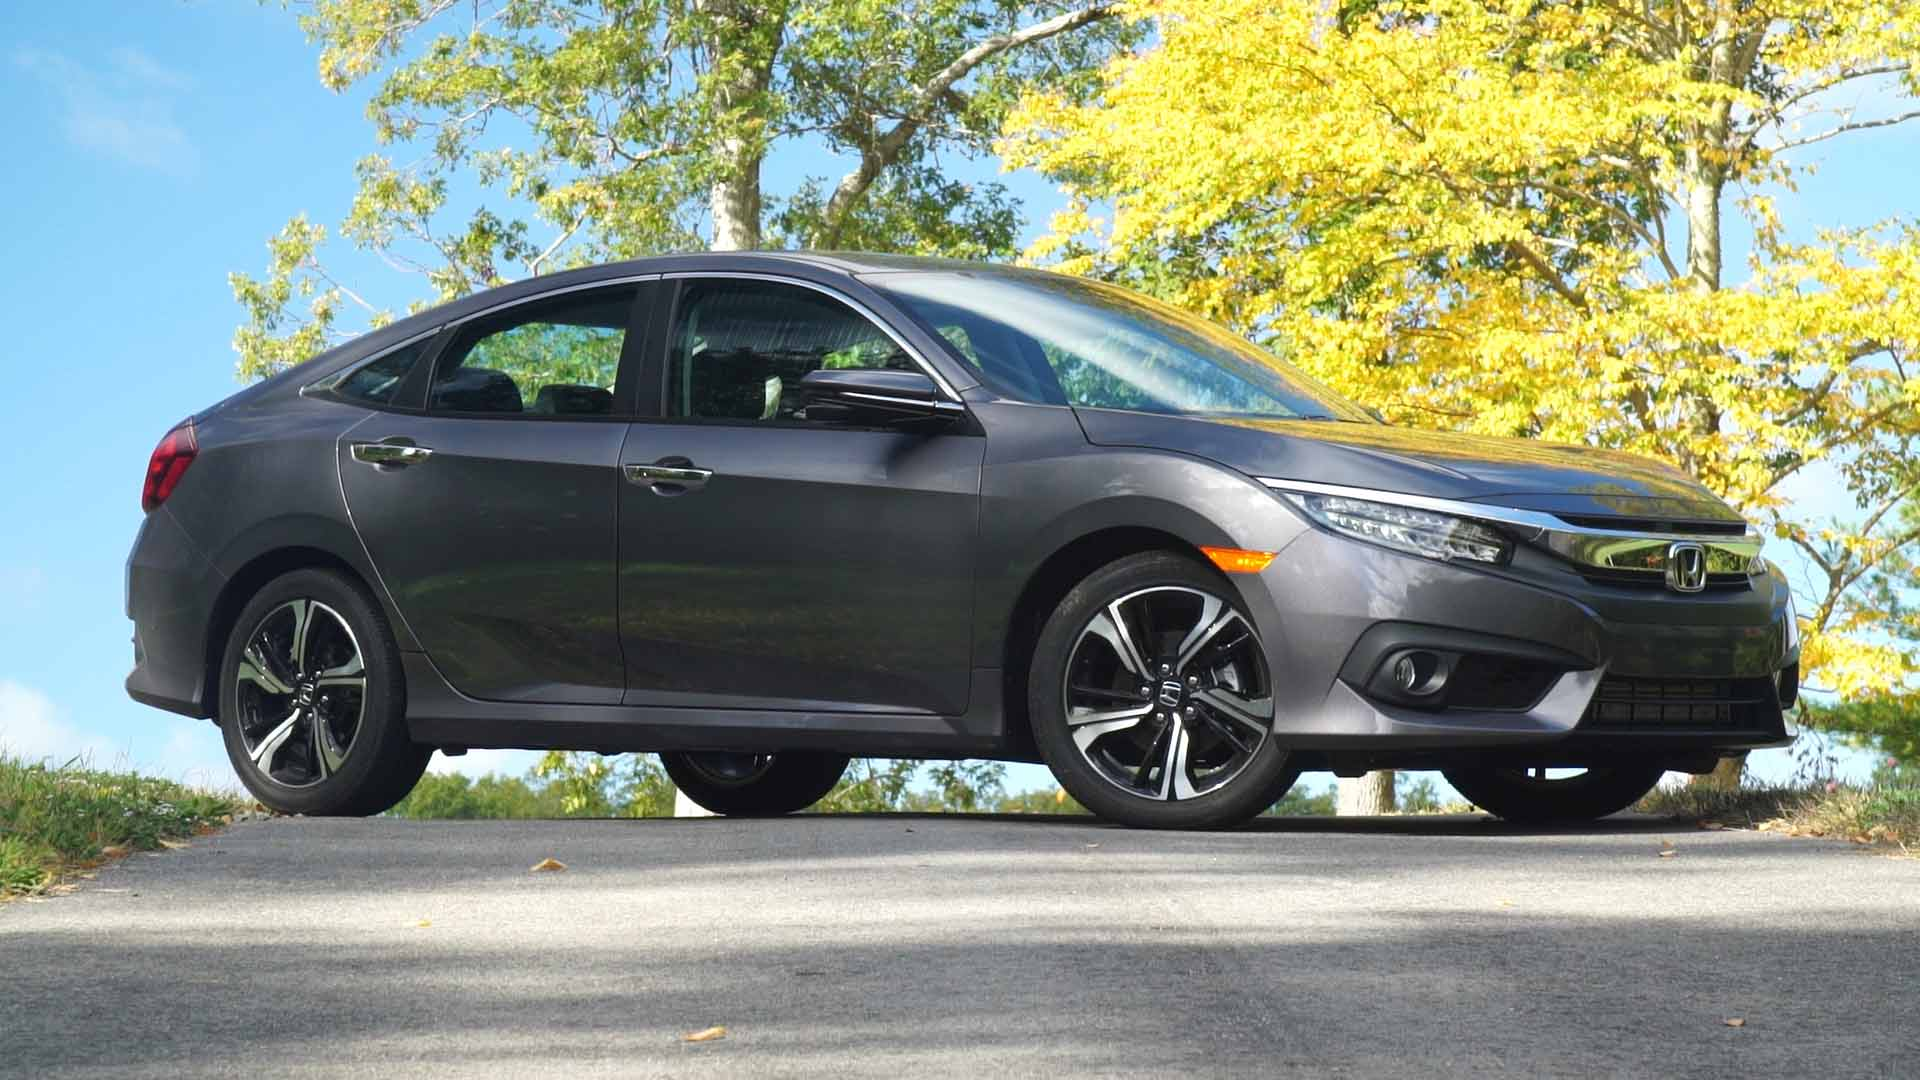 2016 Honda Civic Strives To Be Premium Again